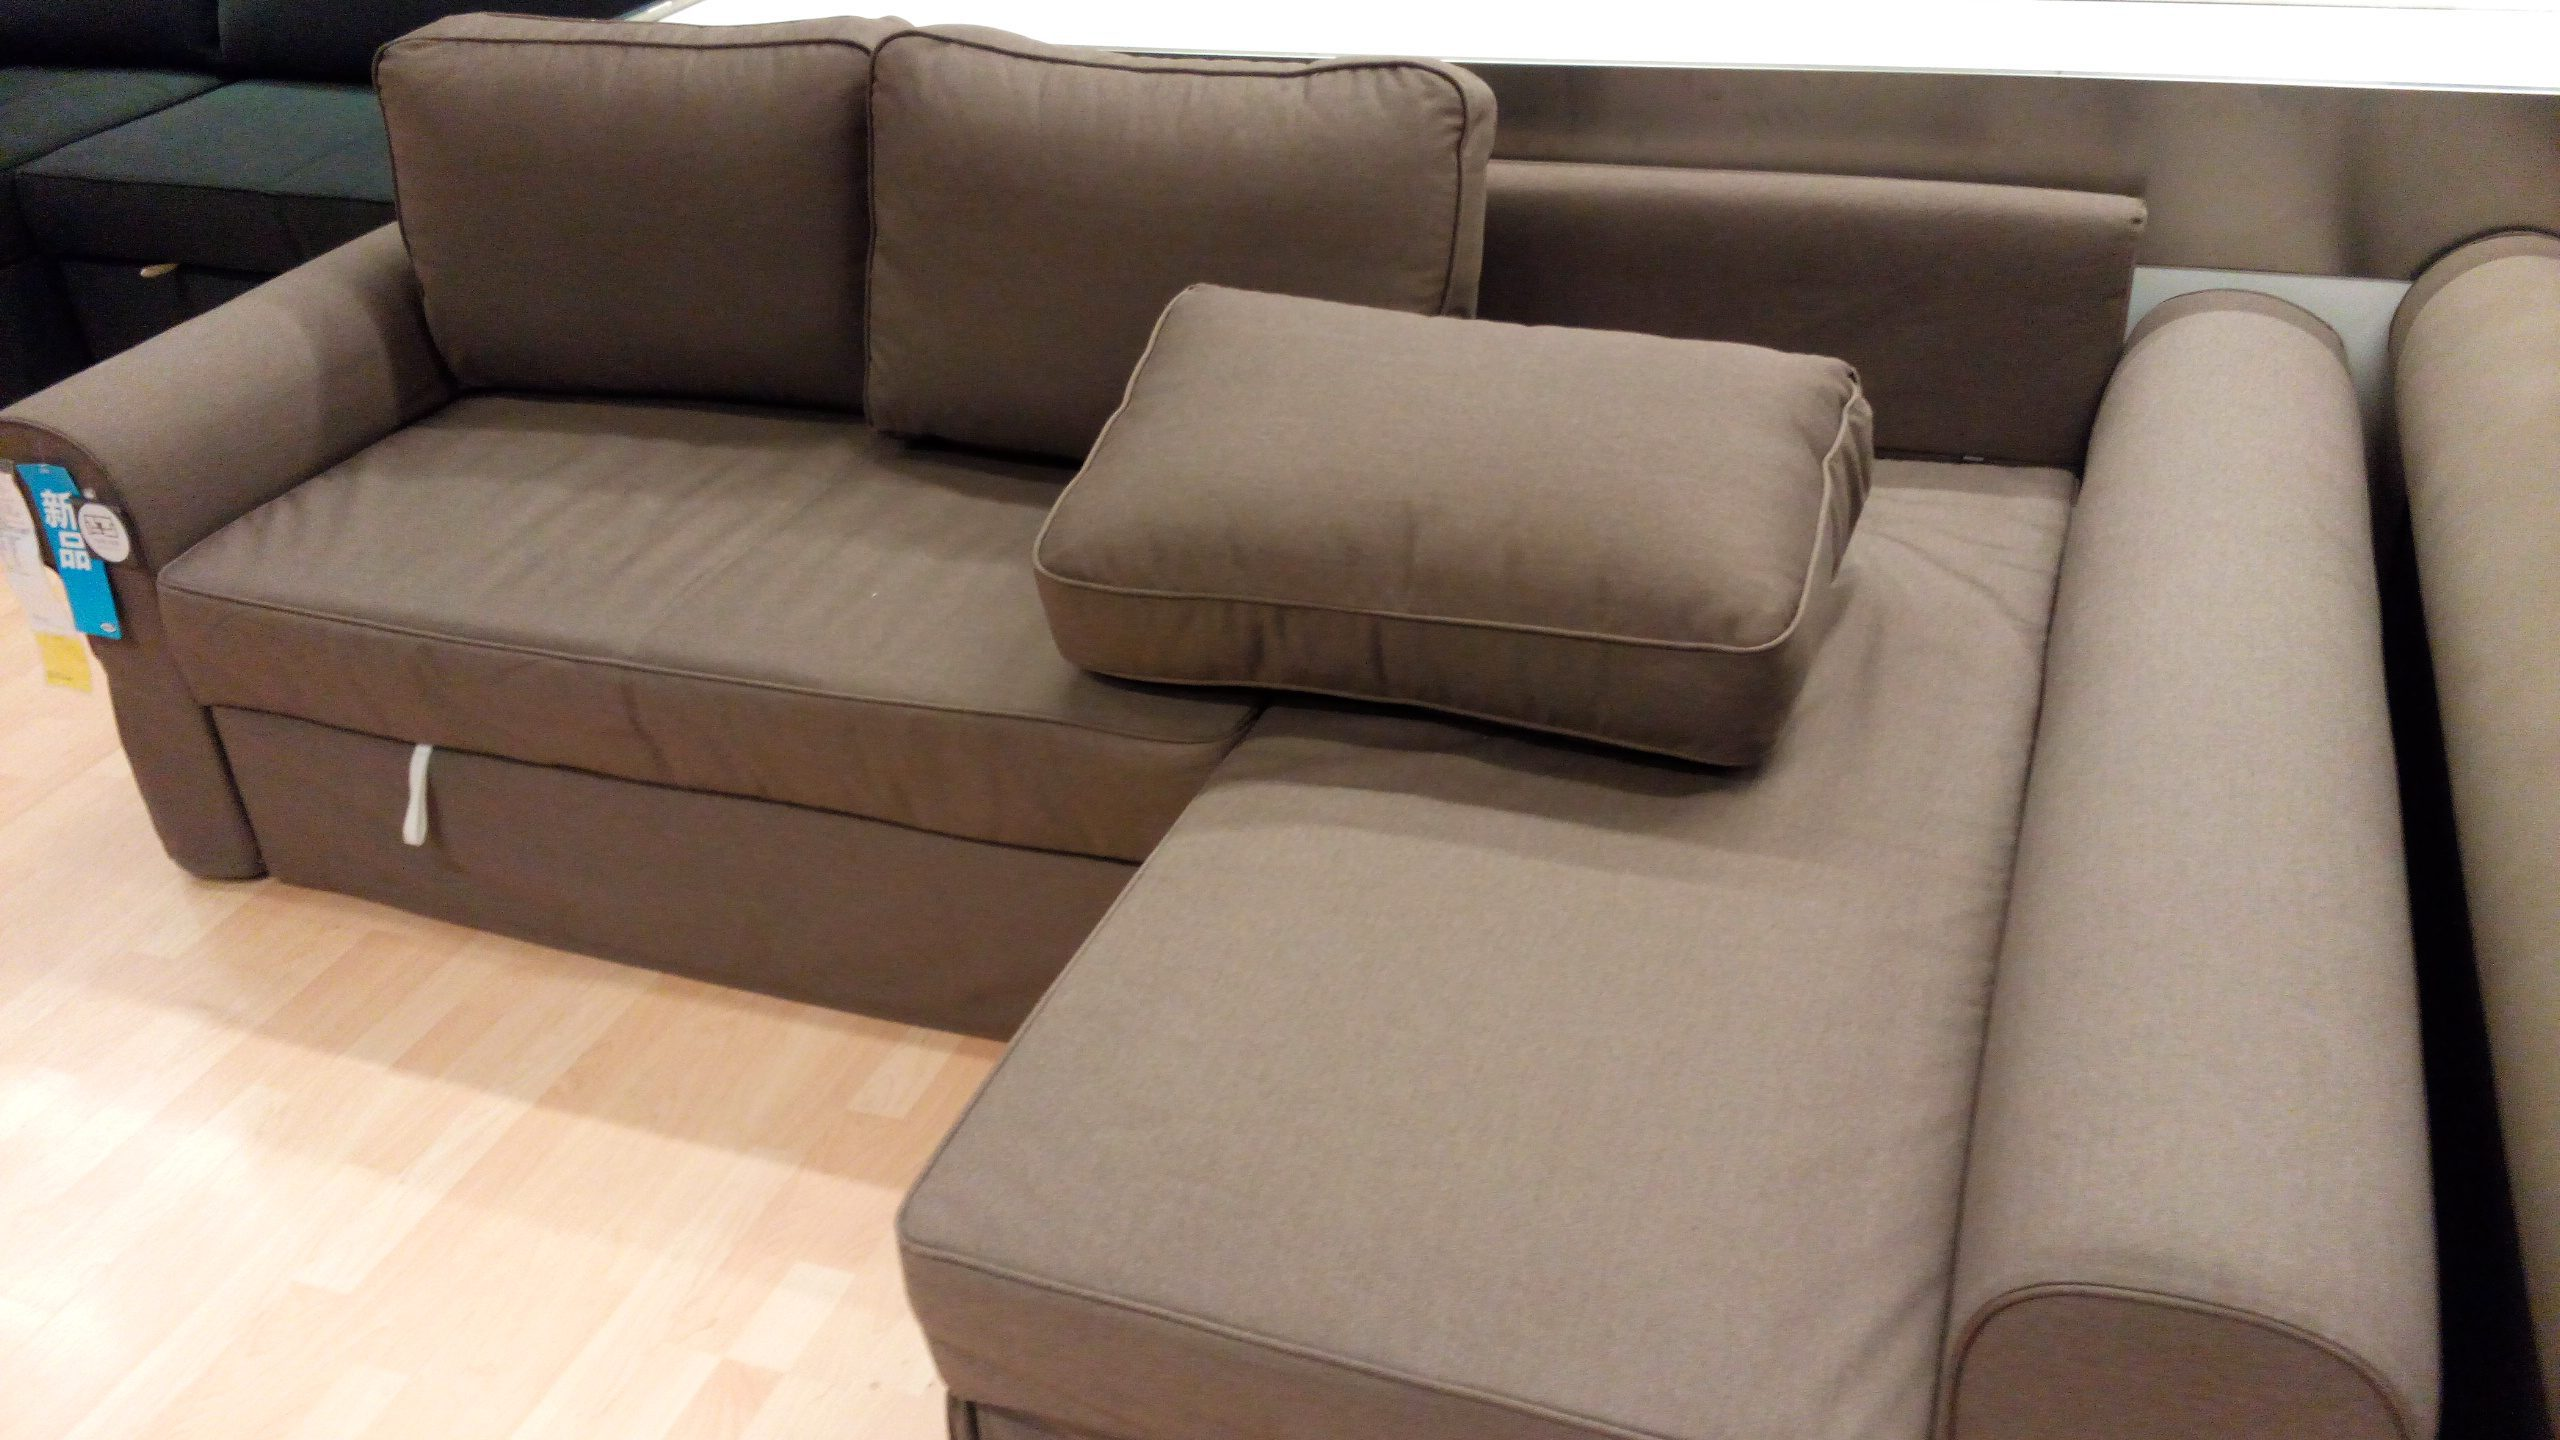 Ikea vilasund and backabro review return of the sofa bed clones Bed divan